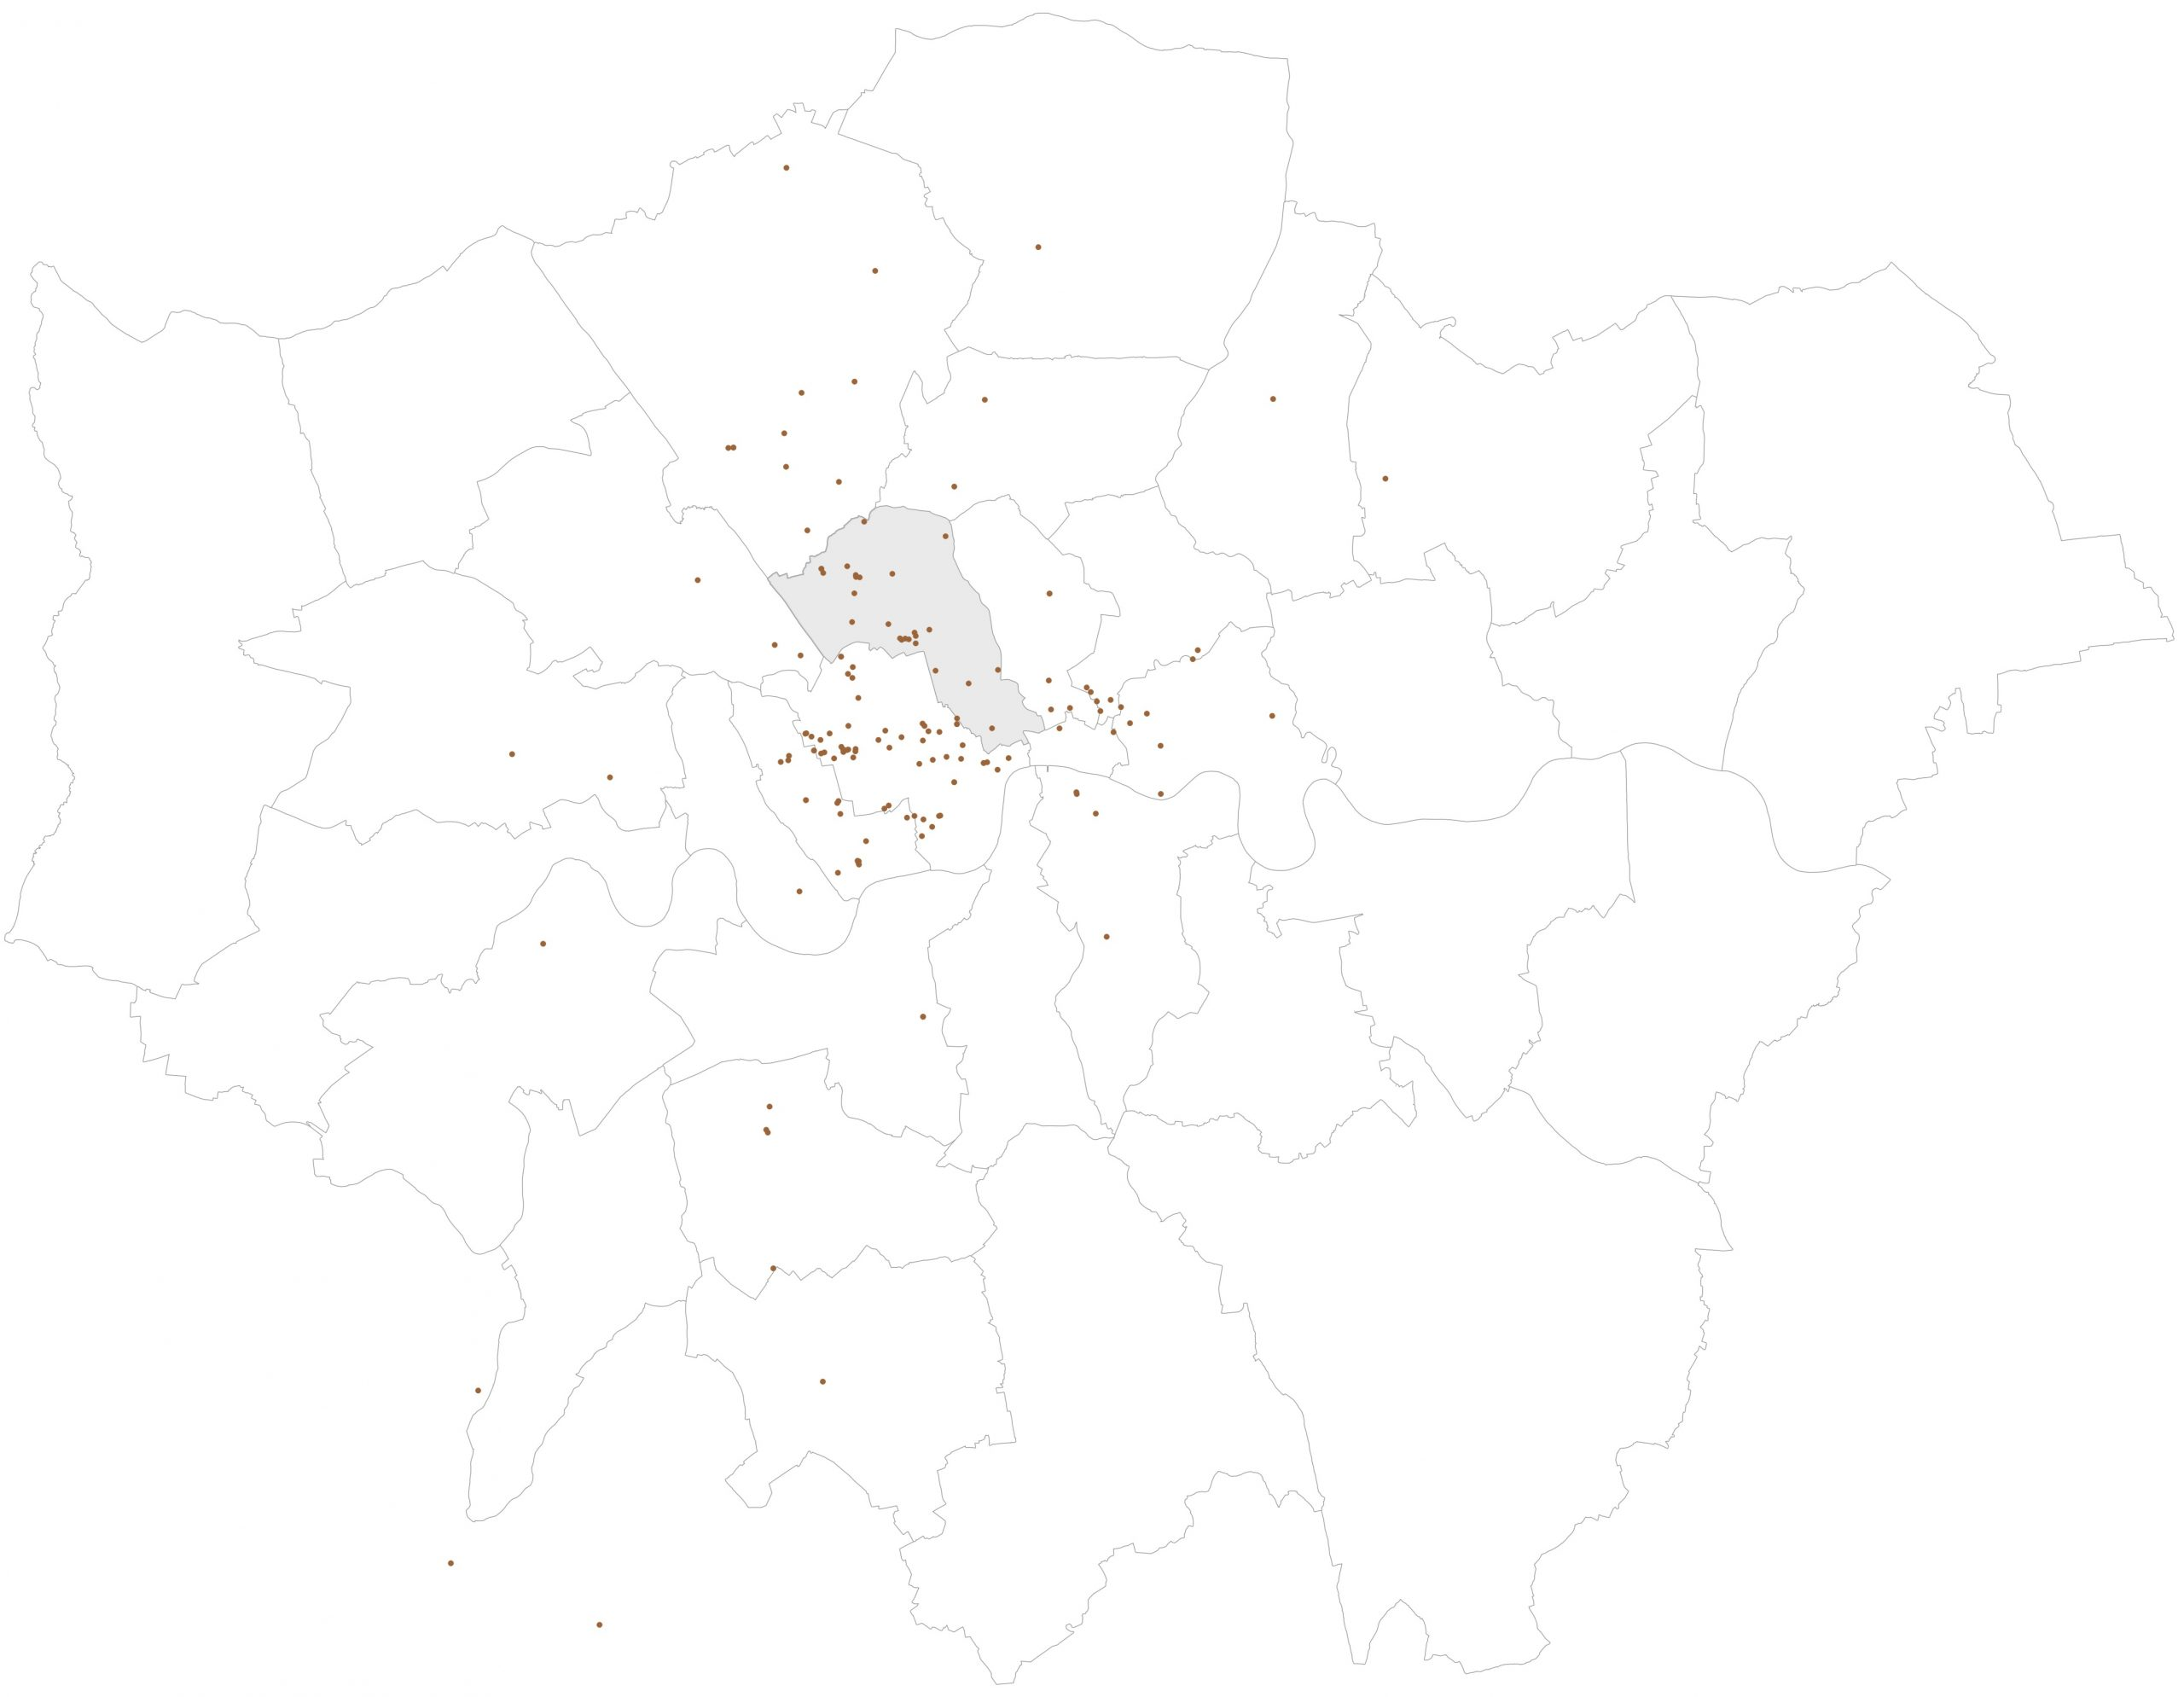 Camden Architects: Patalab London project map